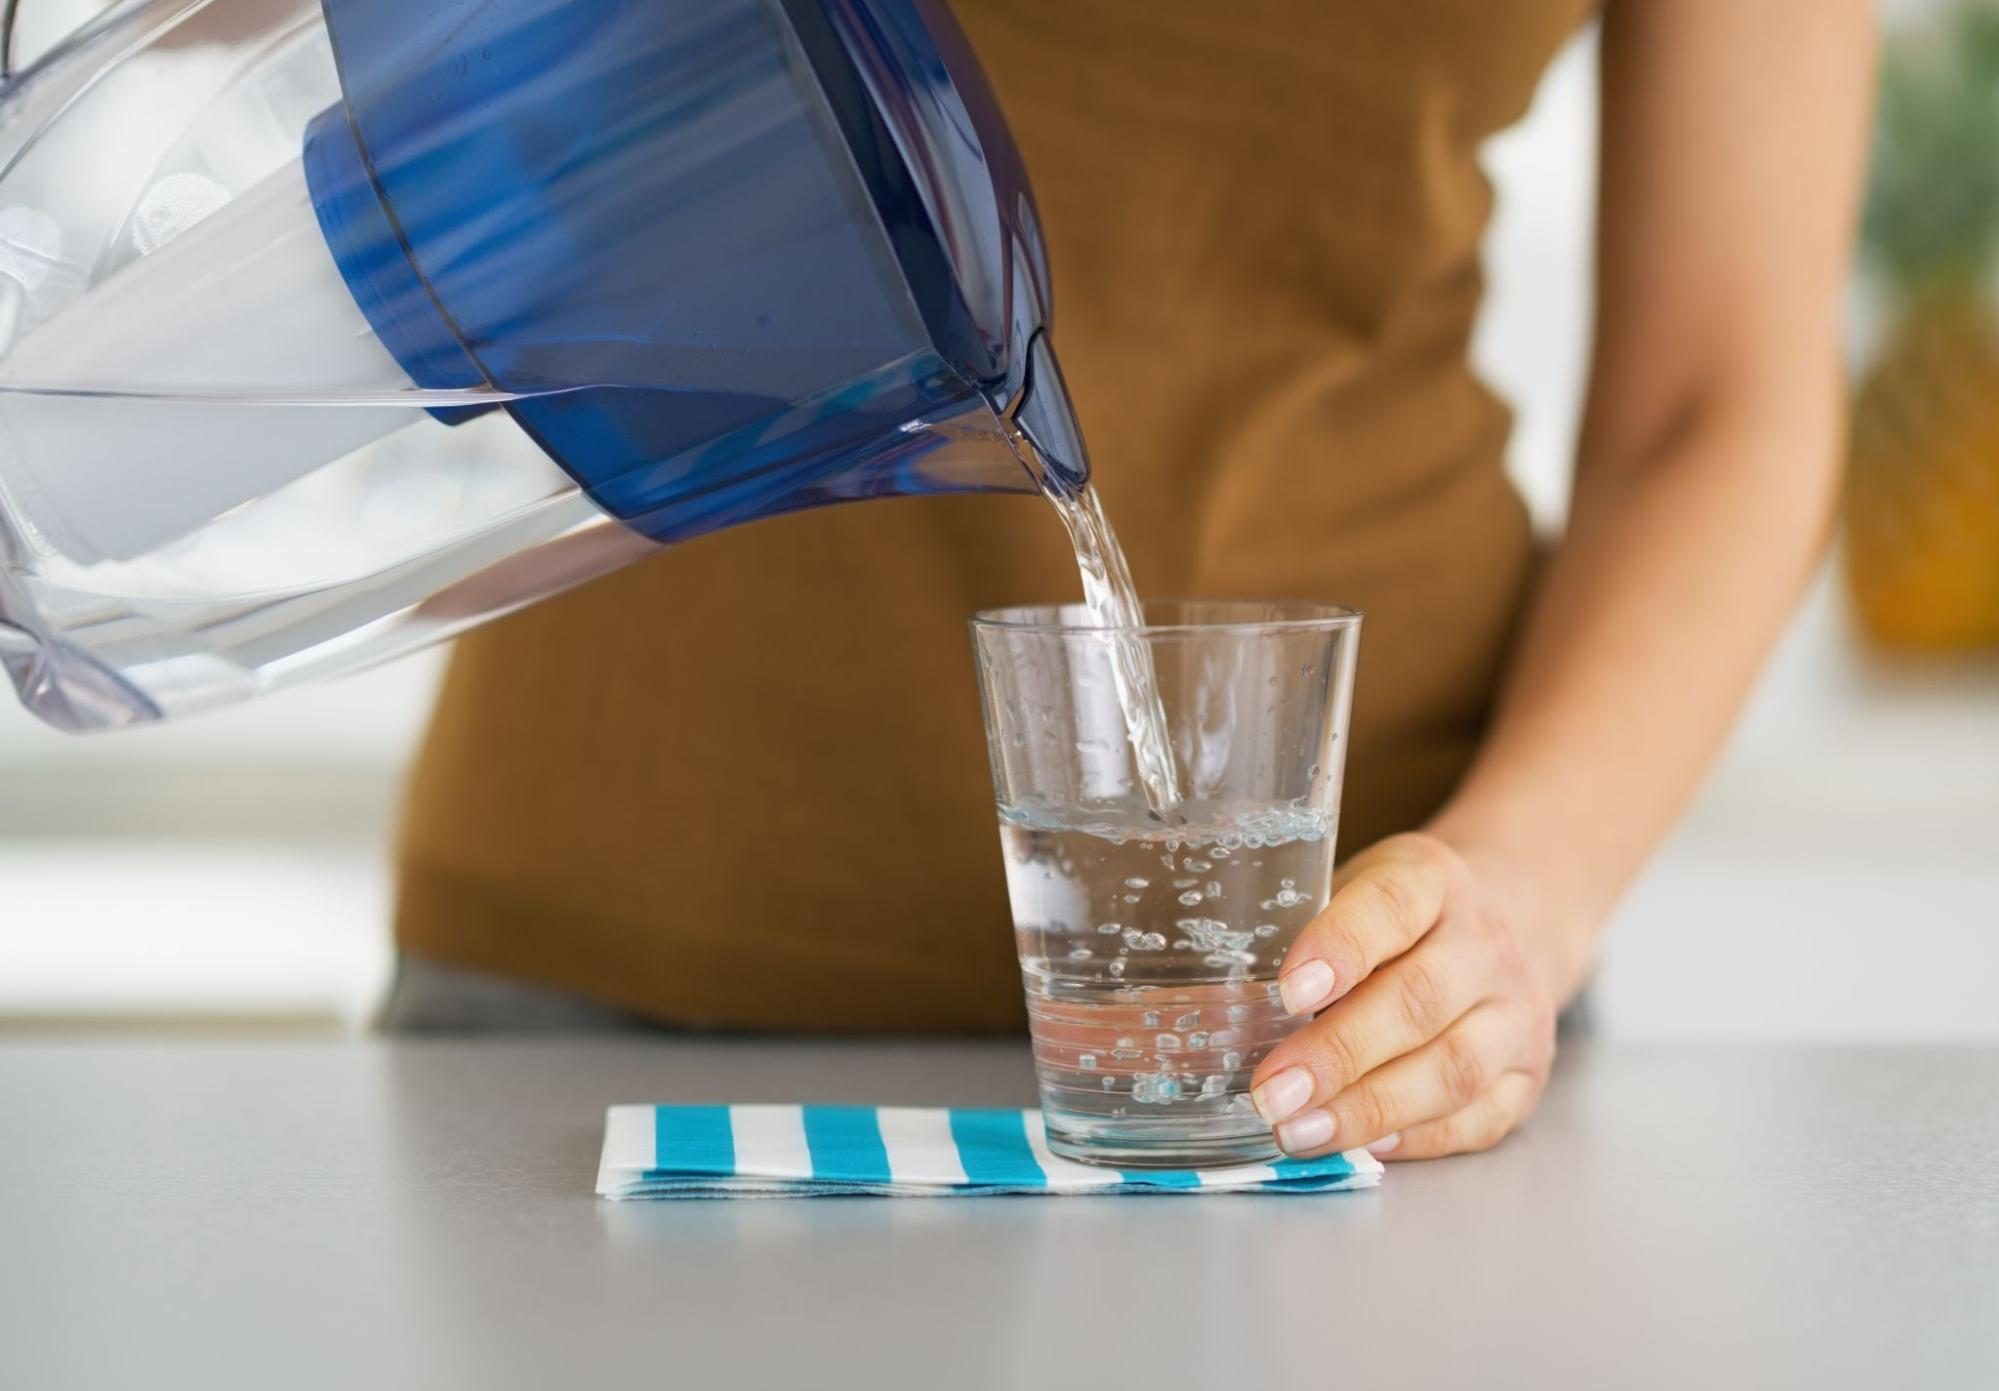 Close up shot of a woman pouring water in a glass